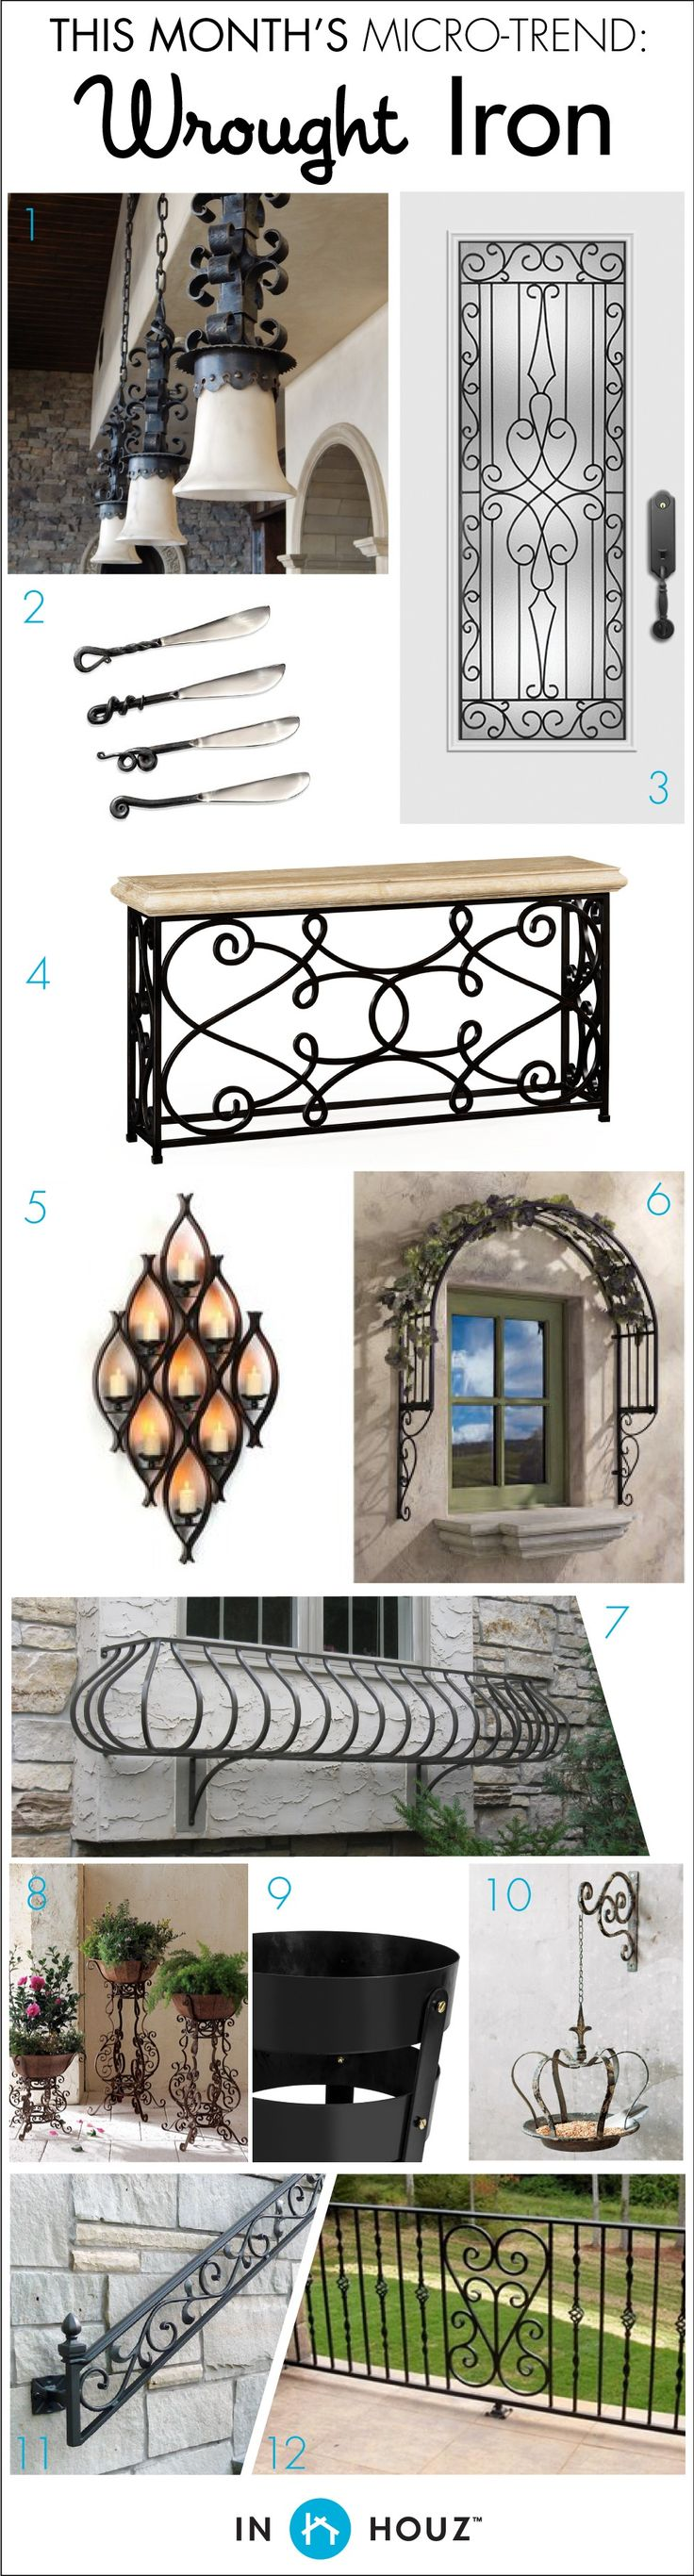 Micro trend home design wrought iron bring some districtive old